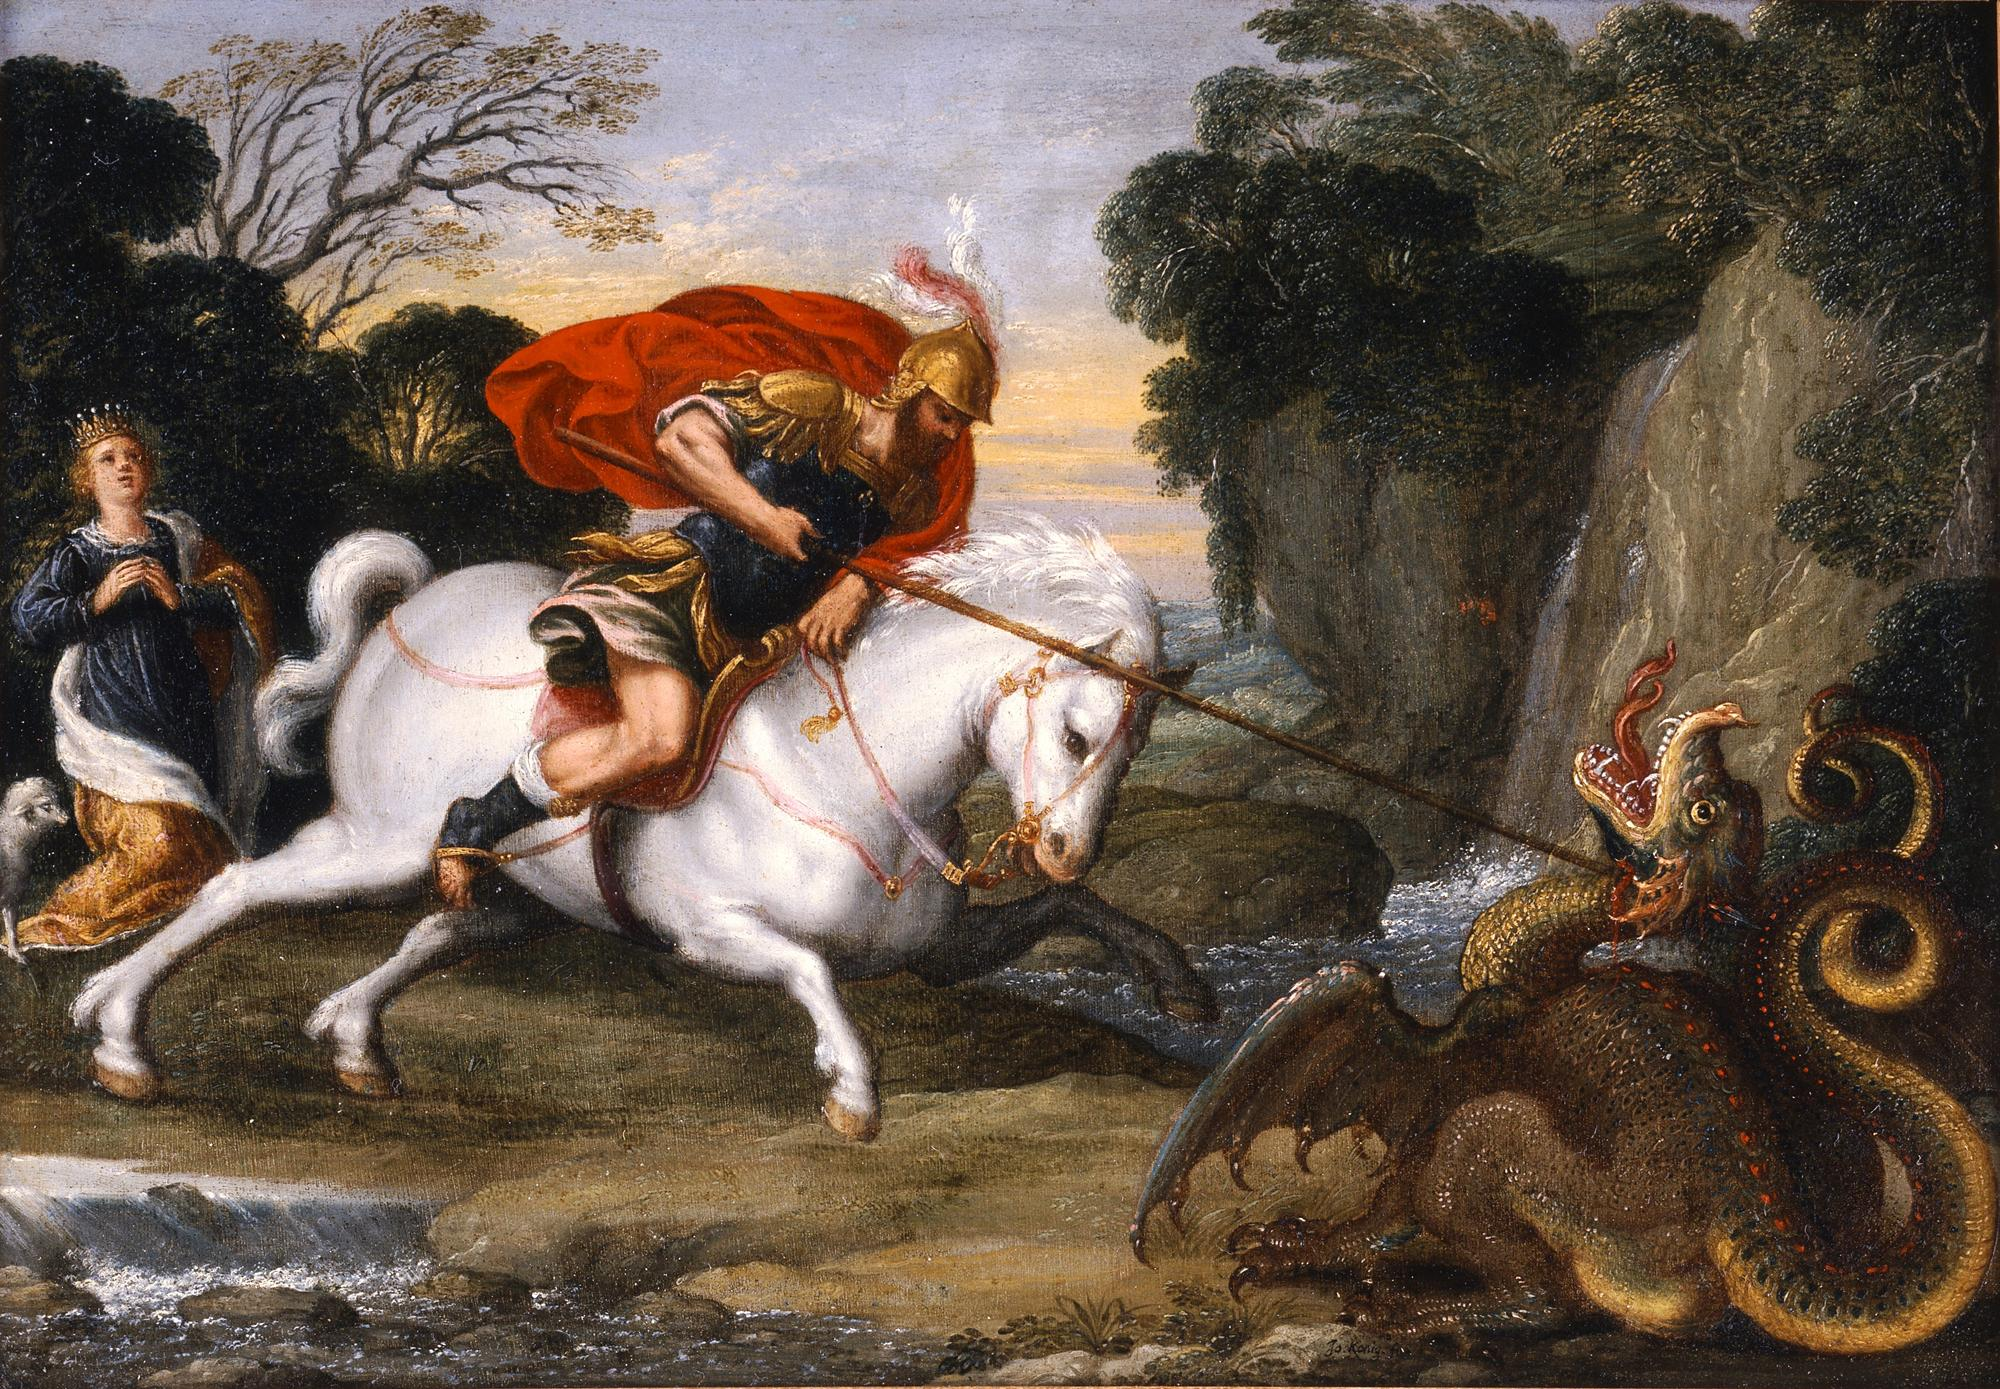 The Legend: Did St George really kill a dragon?